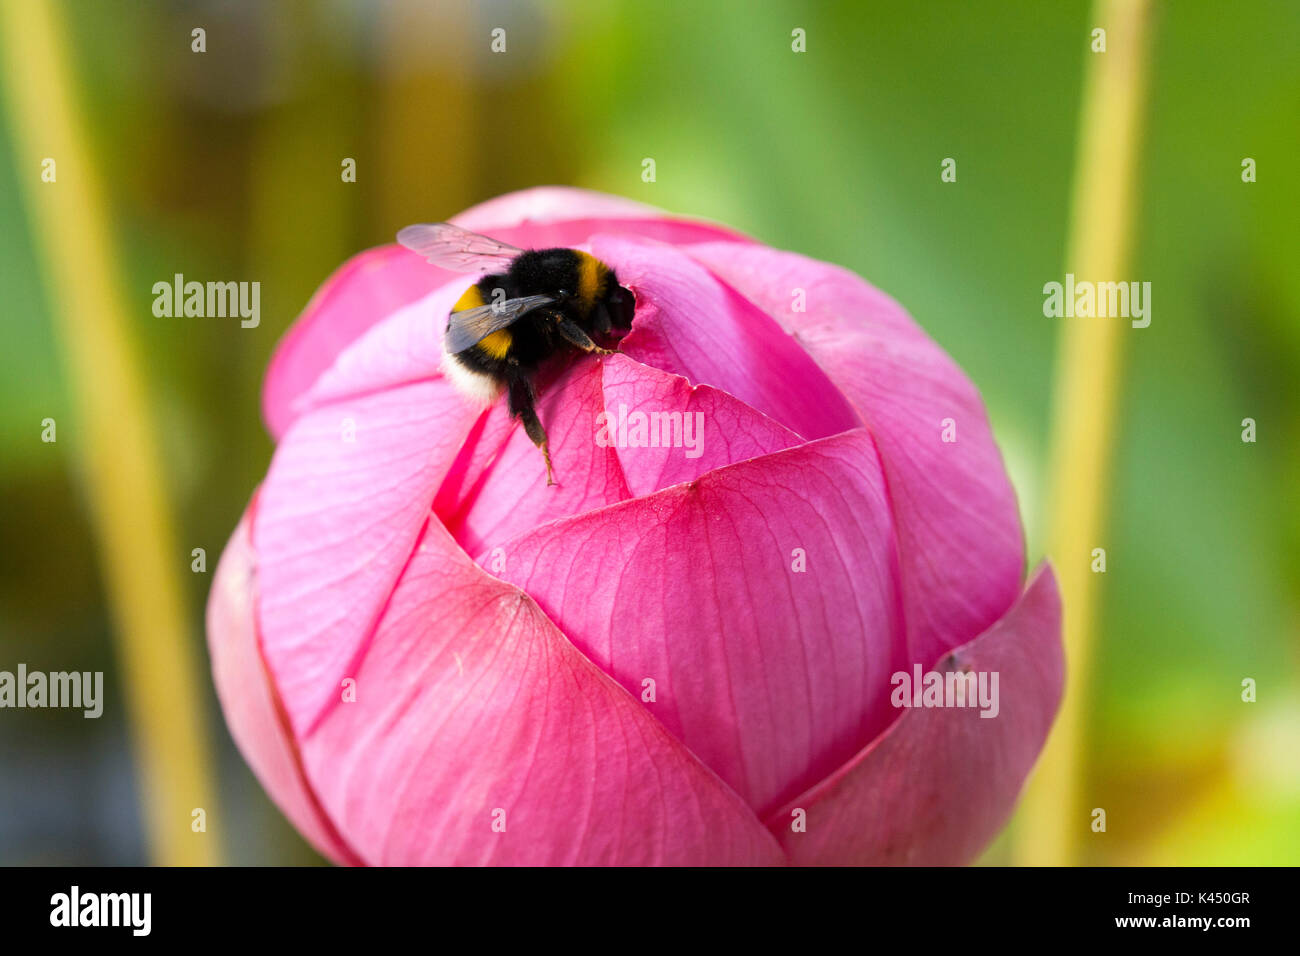 Bee on lotus flower bud stock photo 157462167 alamy bee on lotus flower bud izmirmasajfo